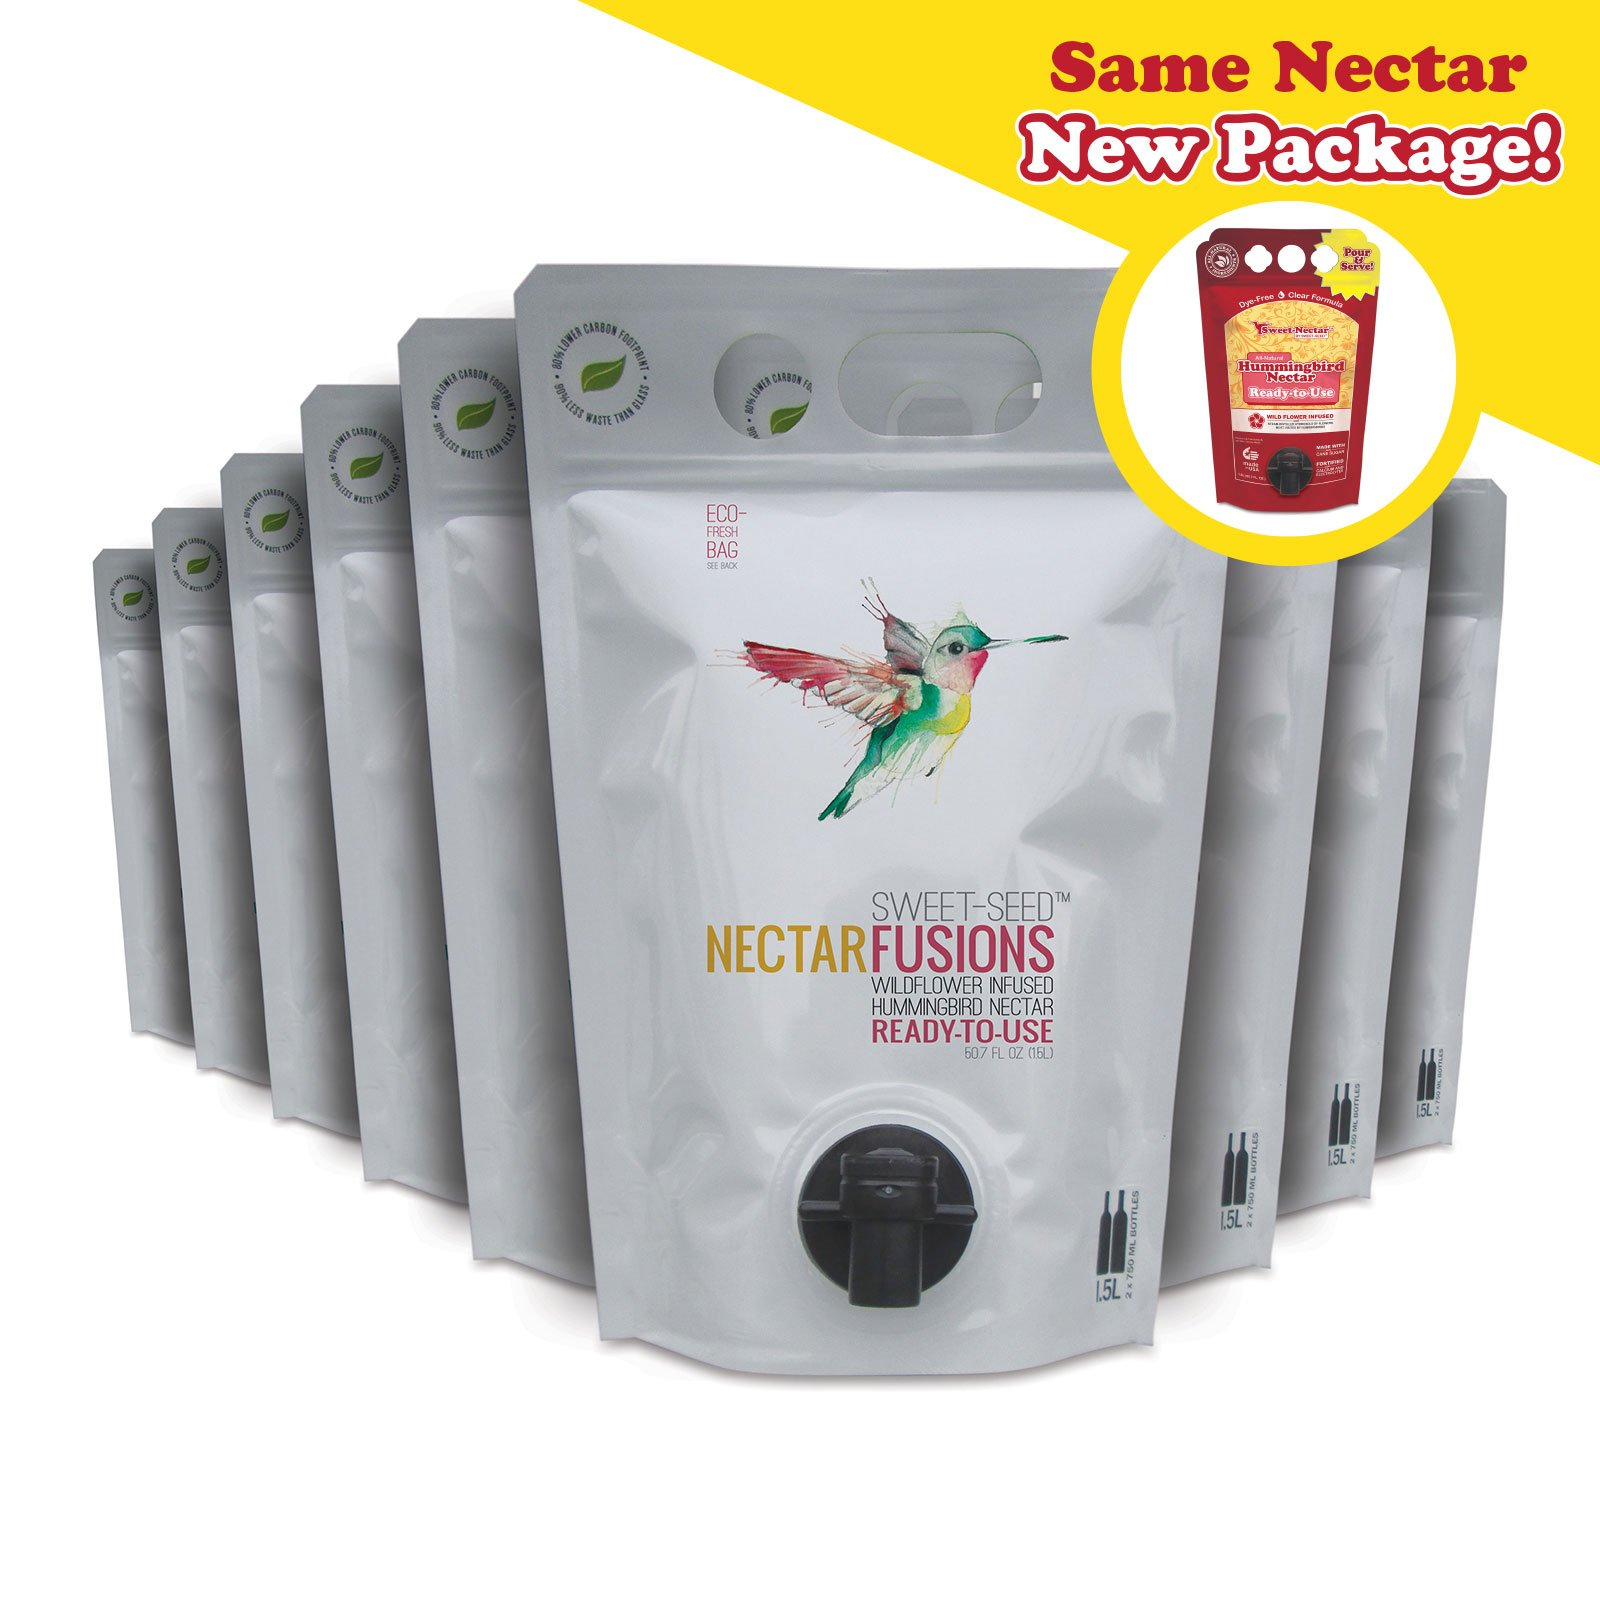 Sweet-Seed, LLC Nectar Fusions Hummingbird Food: [9-pack] All-natural & Dye Free, Wildflower Infused Hummingbird Nectar (450 oz. Ready-to-use Formula)